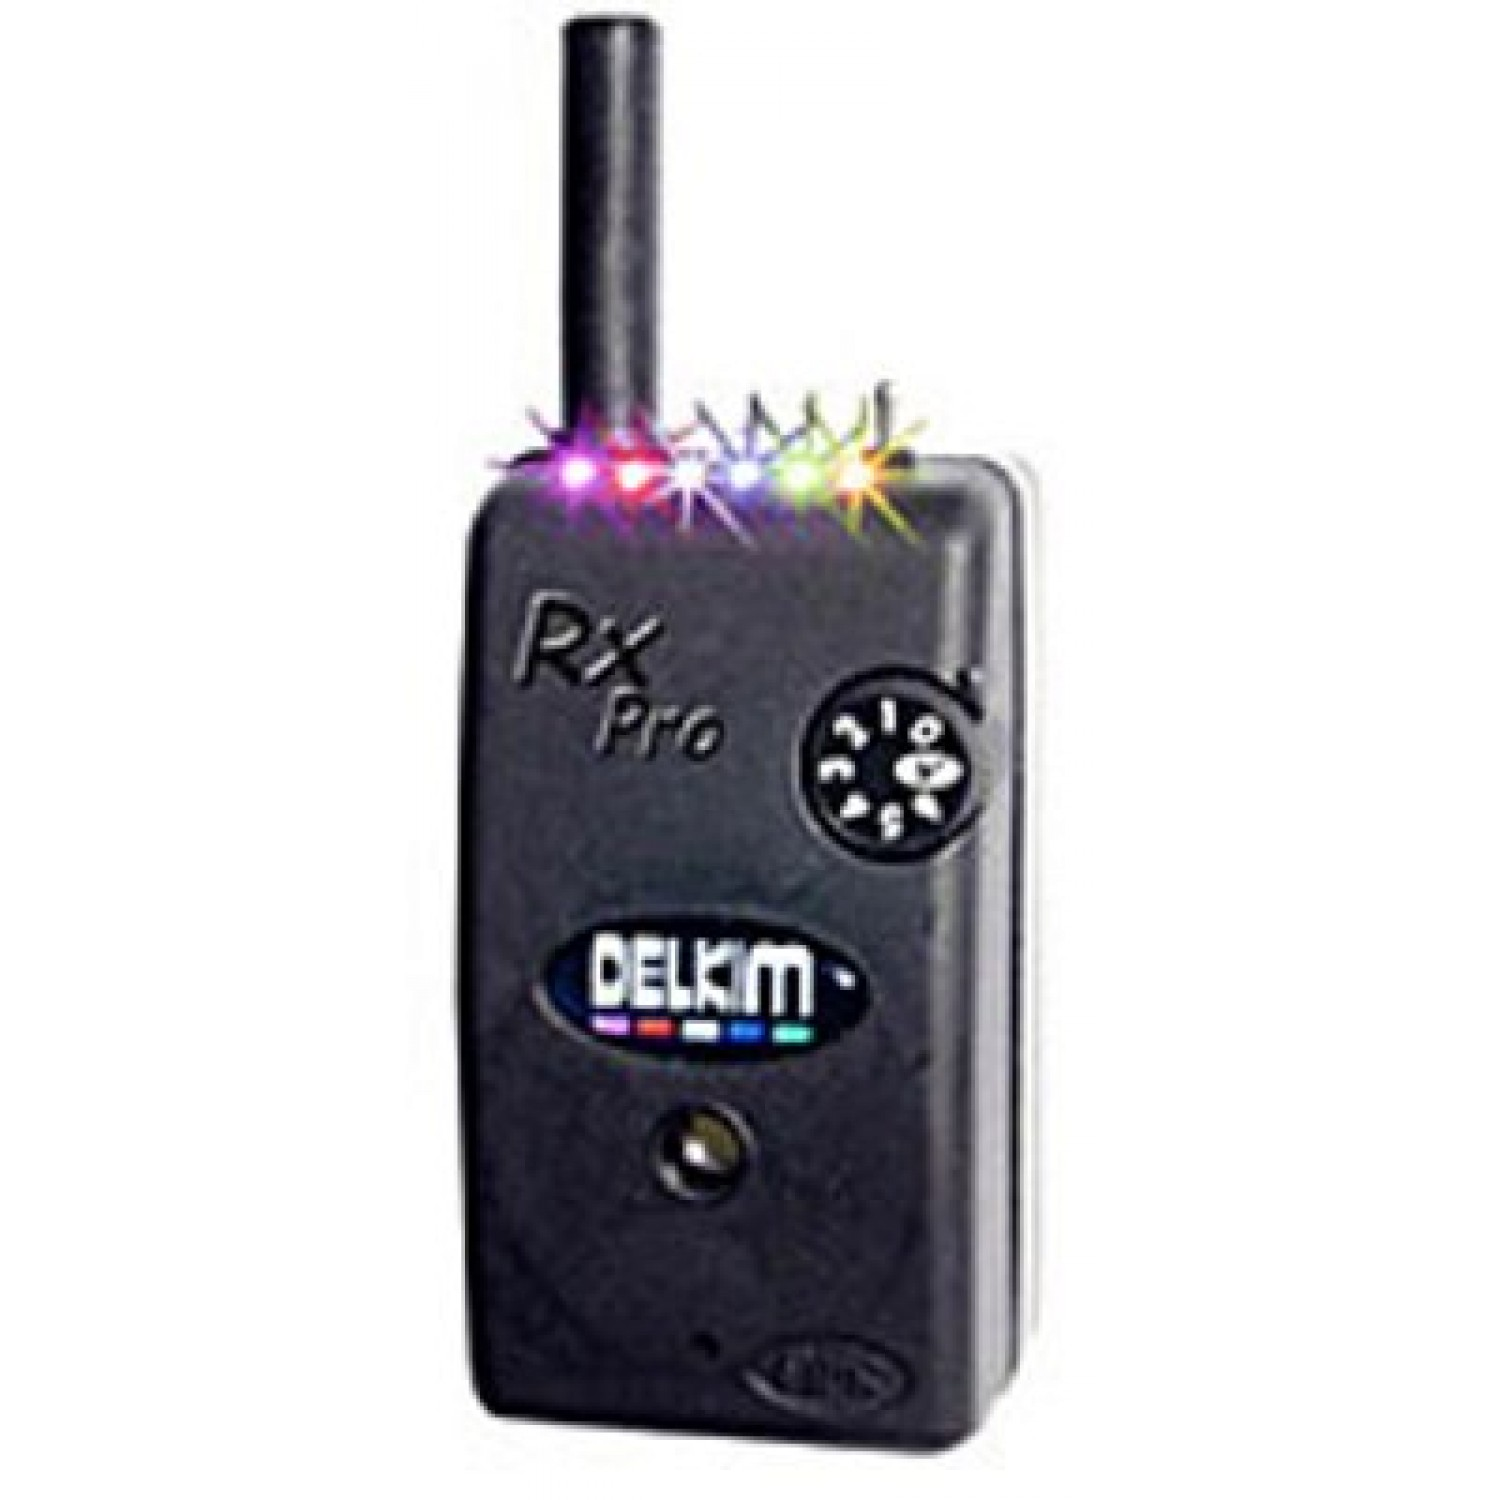 Delkim Rx Plus Pro - 6 LED Mini Receiver